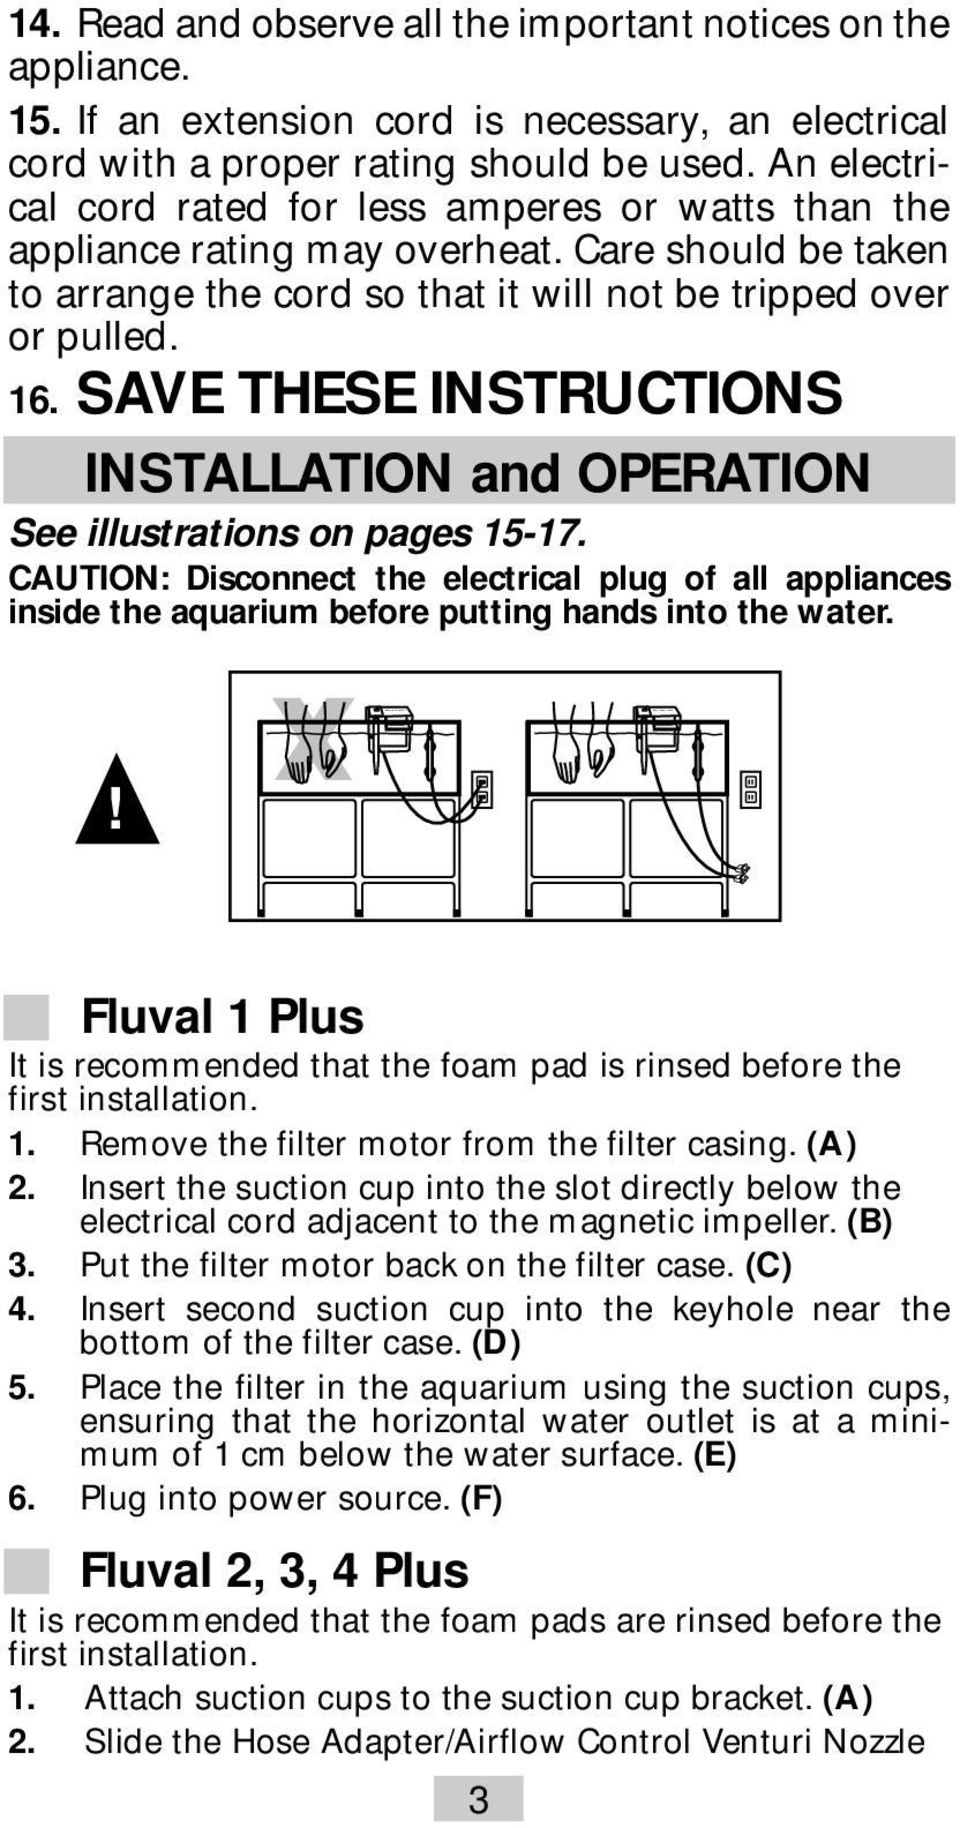 SAVE THESE INSTRUCTIONS INSTALLATION and OPERATION See illustrations on pages 15-17. CAUTION: Disconnect the electrical plug of all appliances inside the aquarium before putting hands into the water.